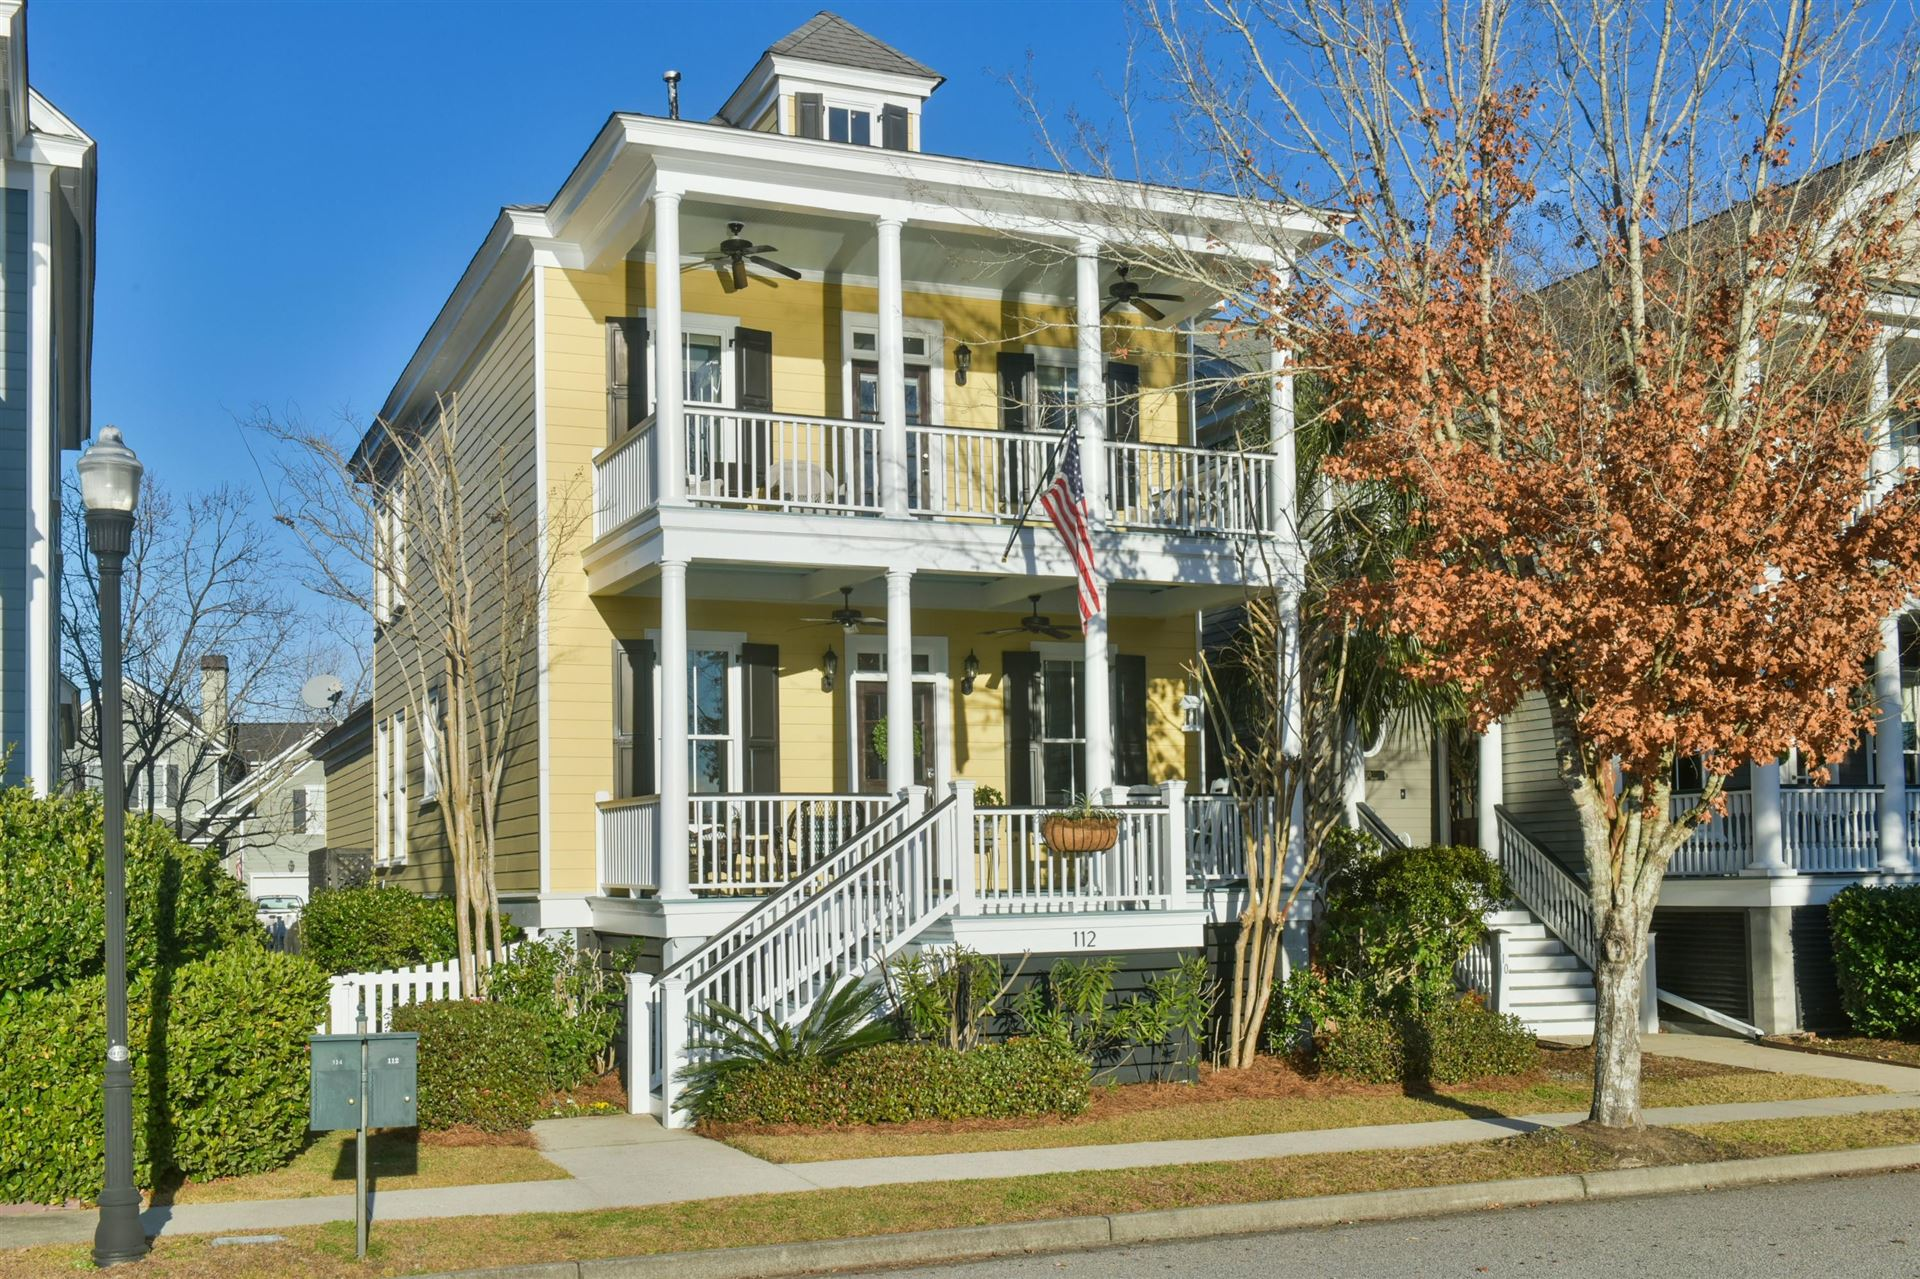 Photo of 112 Currier Street, Charleston, SC 29492 (MLS # 21002178)